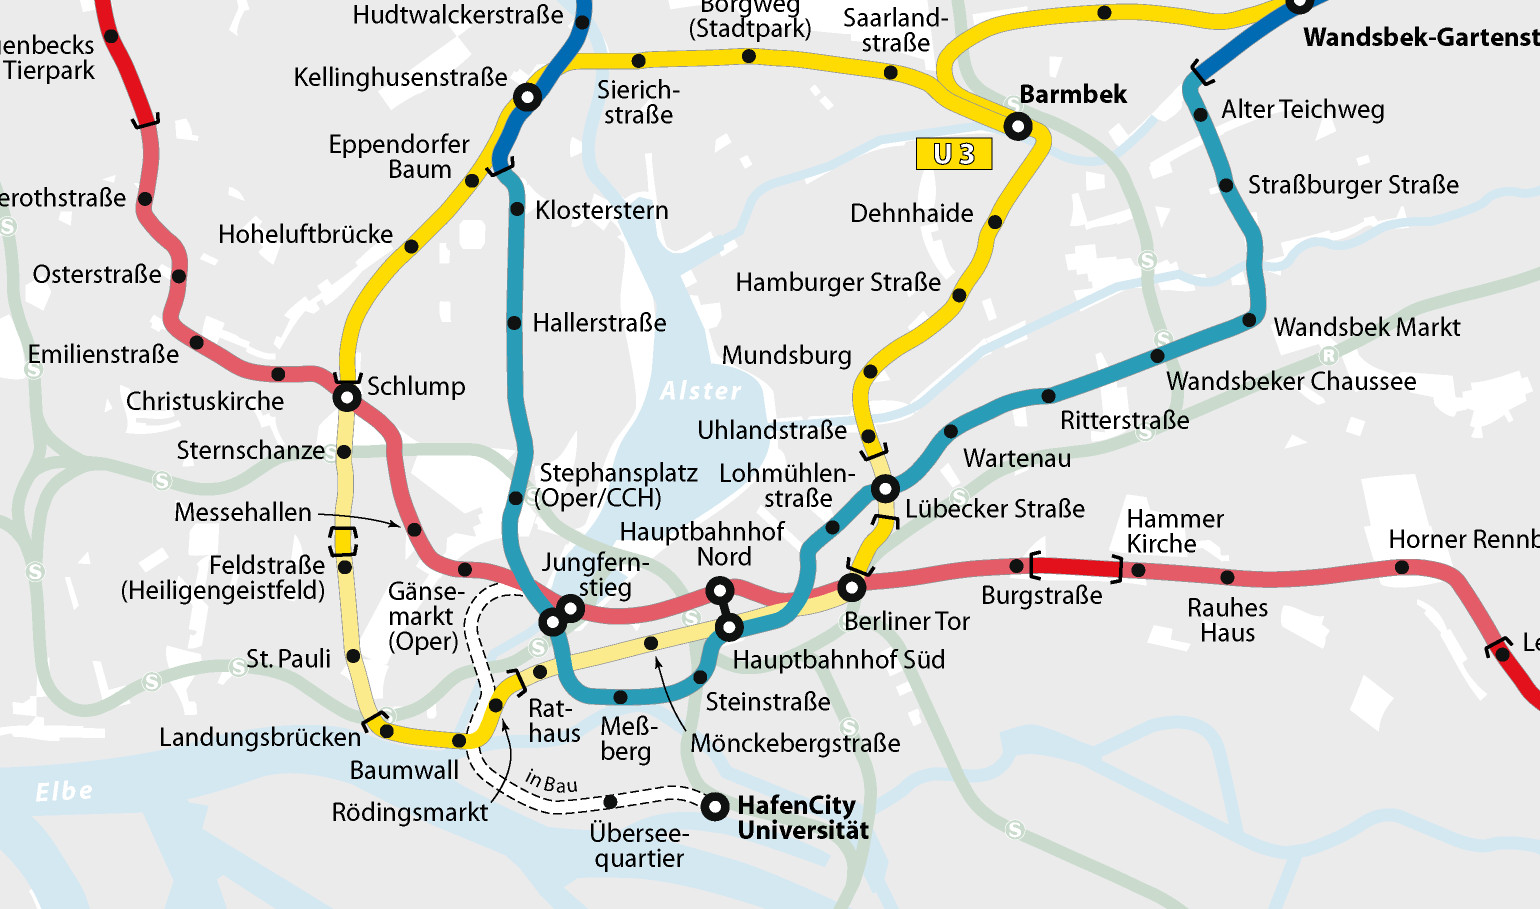 Hamburg Subway Map.Hamburg Metro Transport Wiki